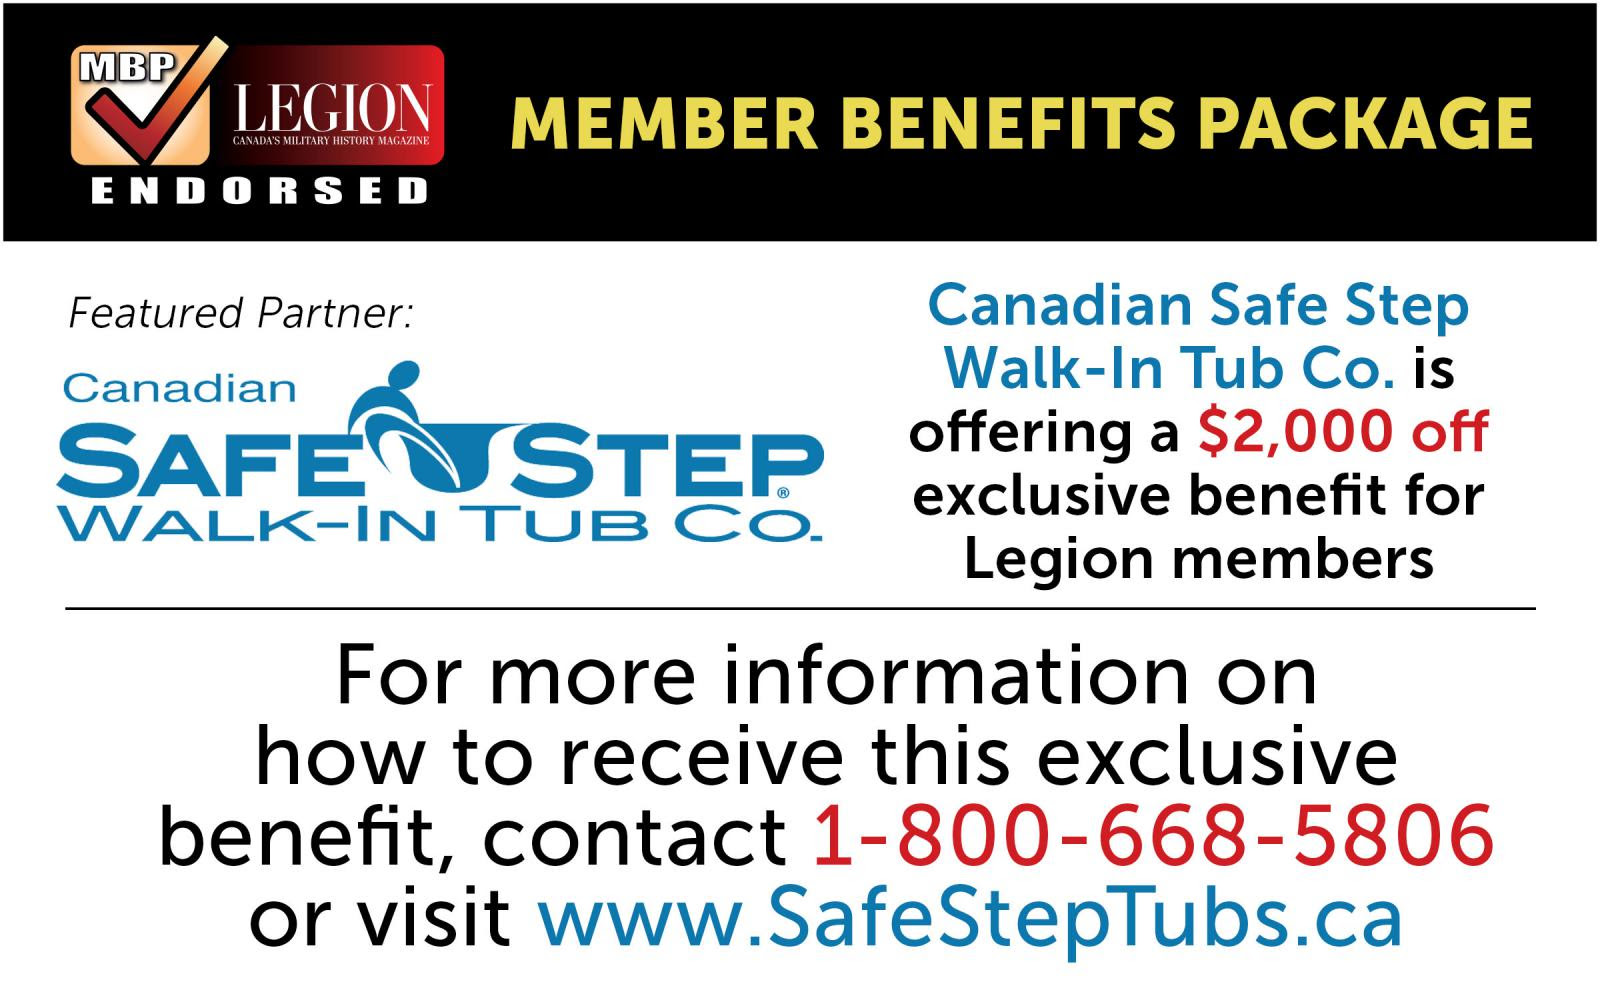 Safestep tubs